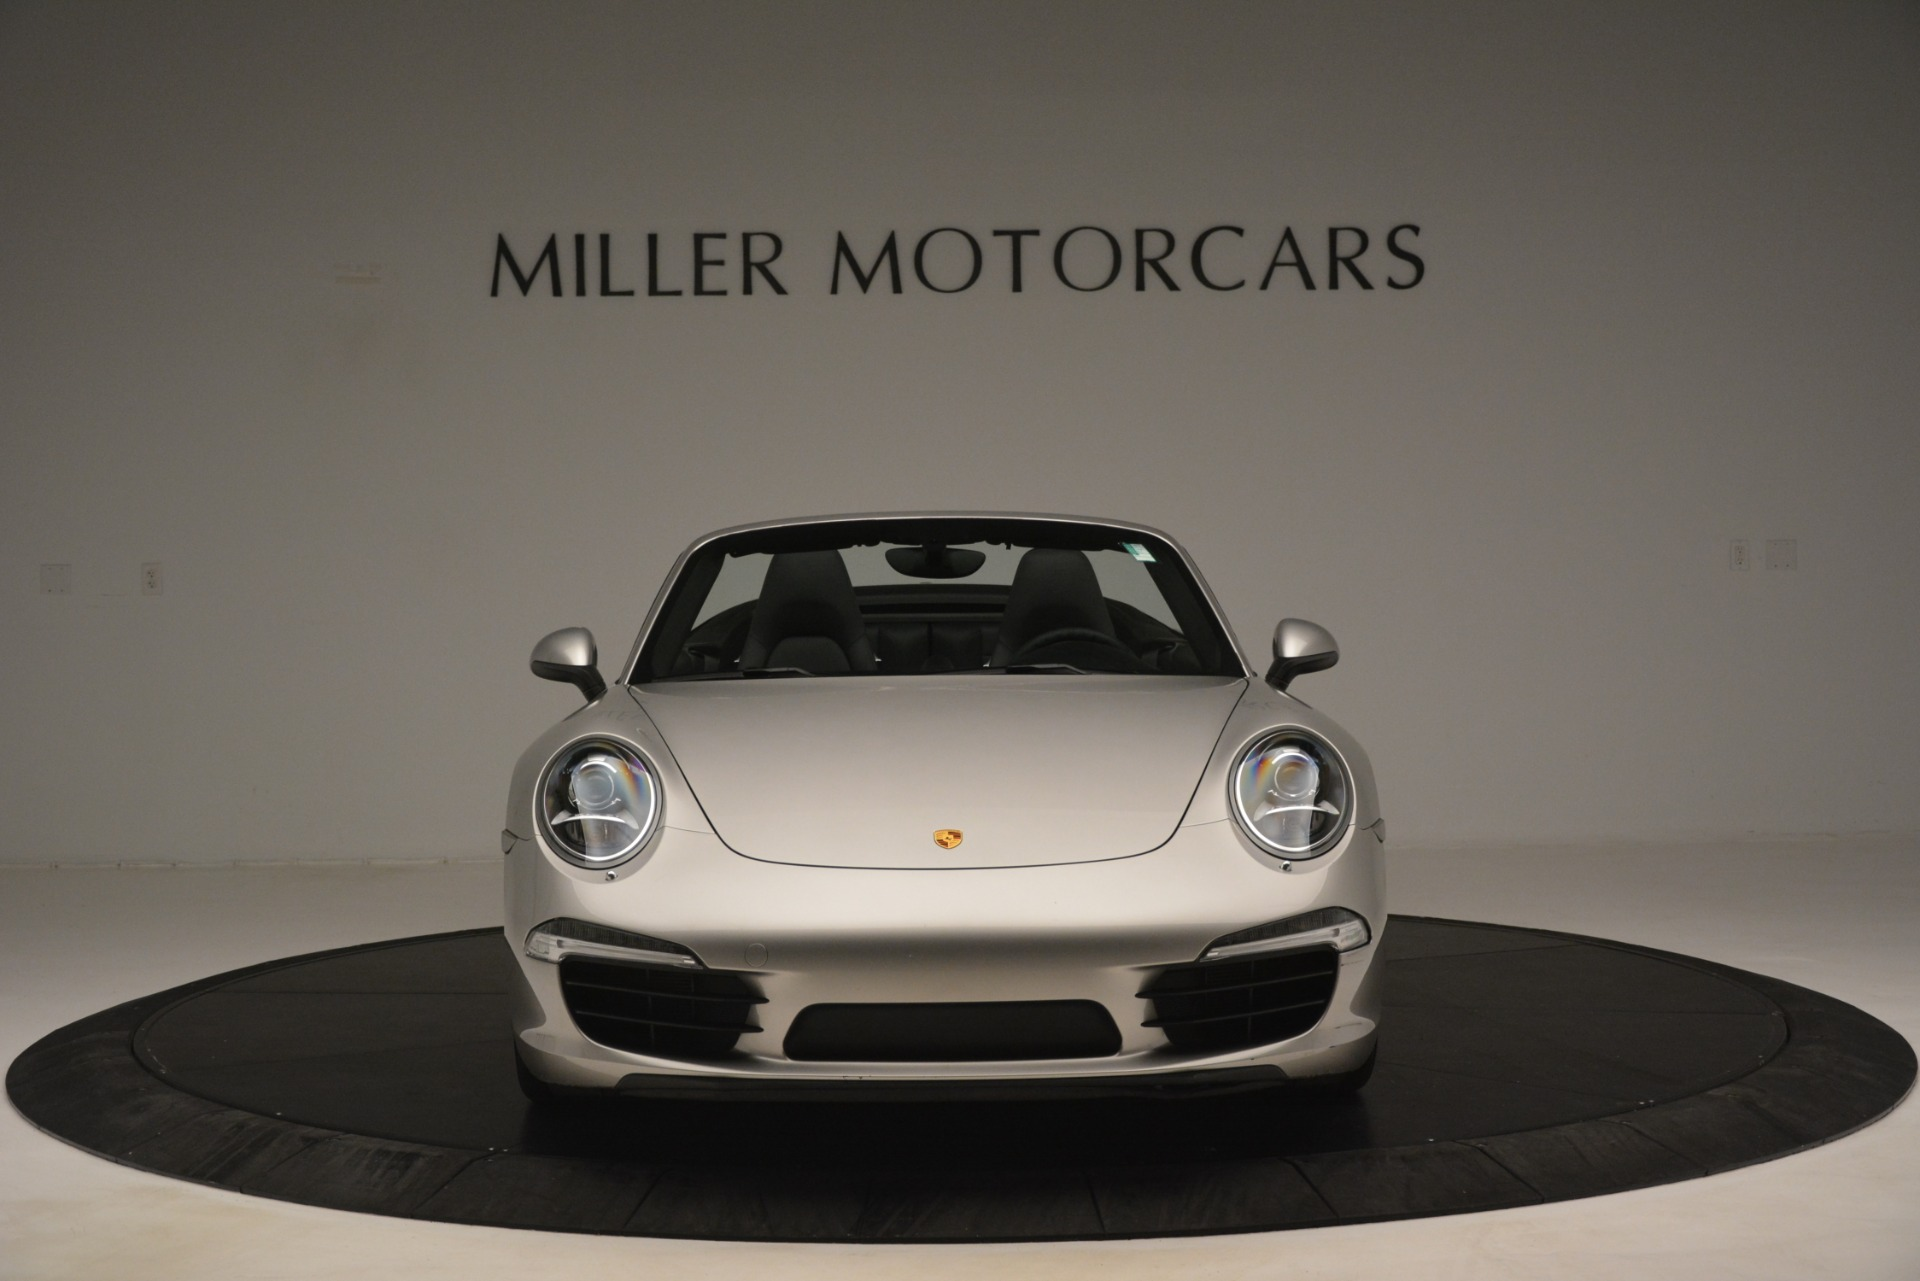 Used 2013 Porsche 911 Carrera S For Sale In Greenwich, CT 3107_p7